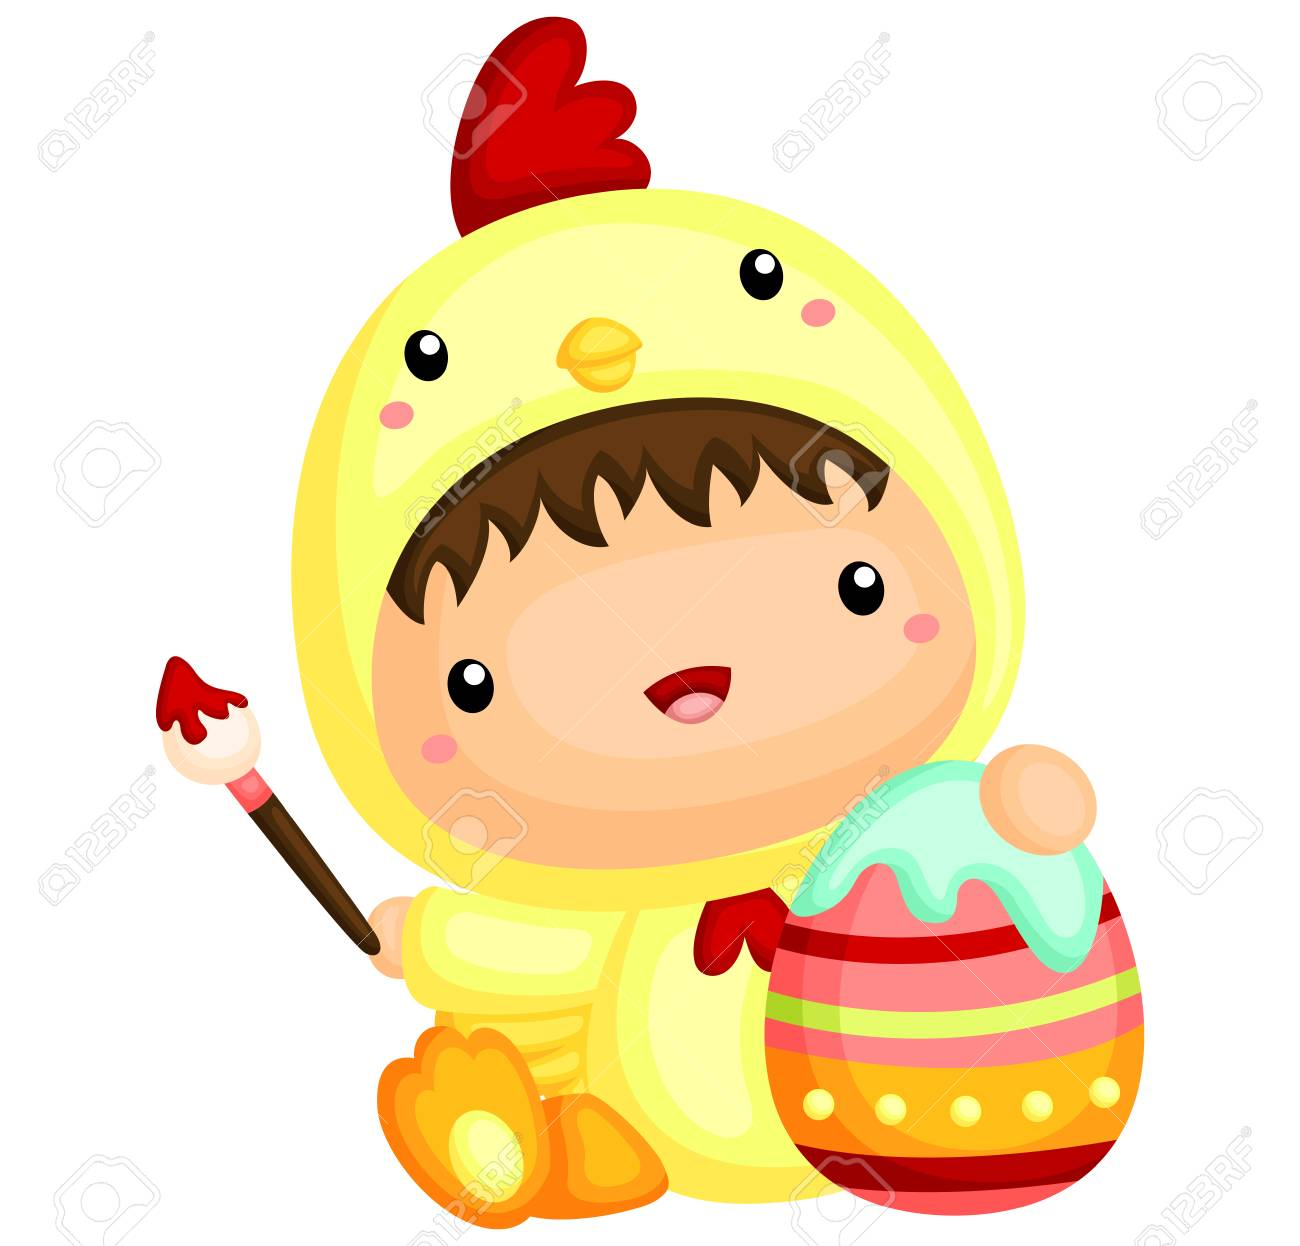 Cute Boy in Chicken Costume Painting Easter Egg Stock Vector - 52537489  sc 1 st  123RF.com & Cute Boy In Chicken Costume Painting Easter Egg Royalty Free ...